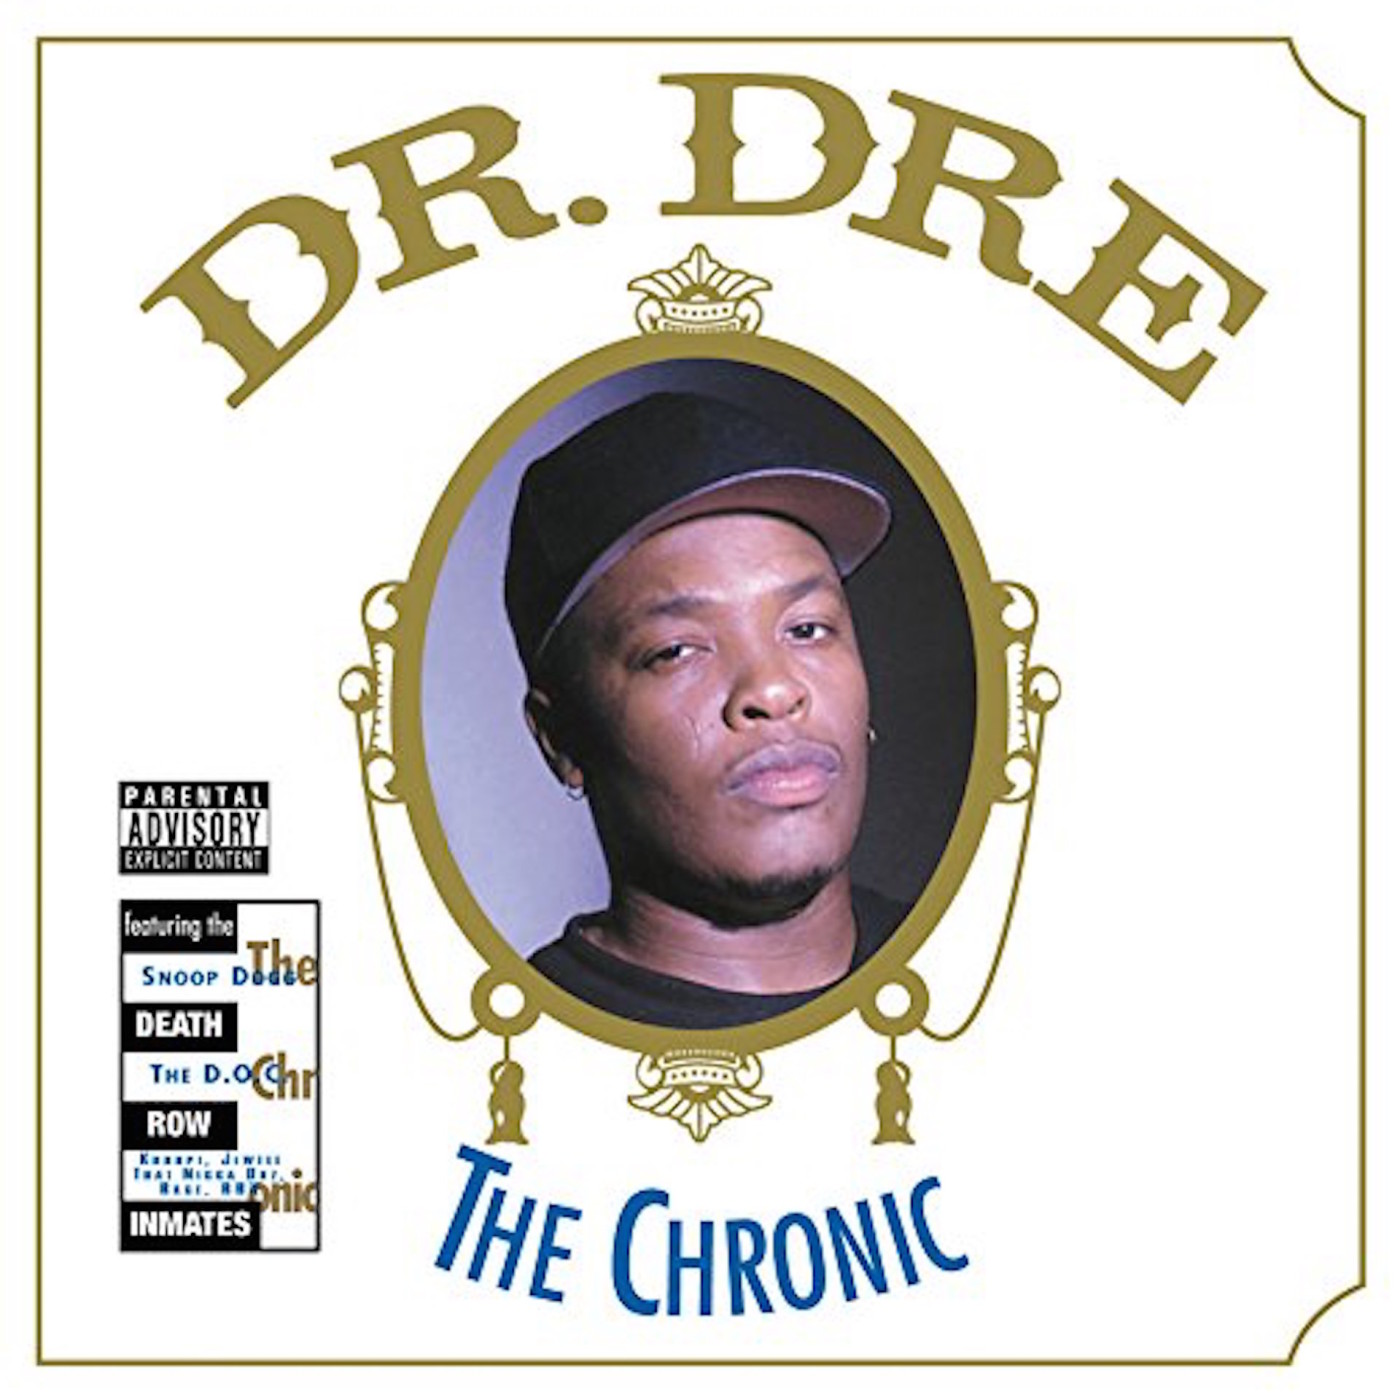 'The Chronic' album cover